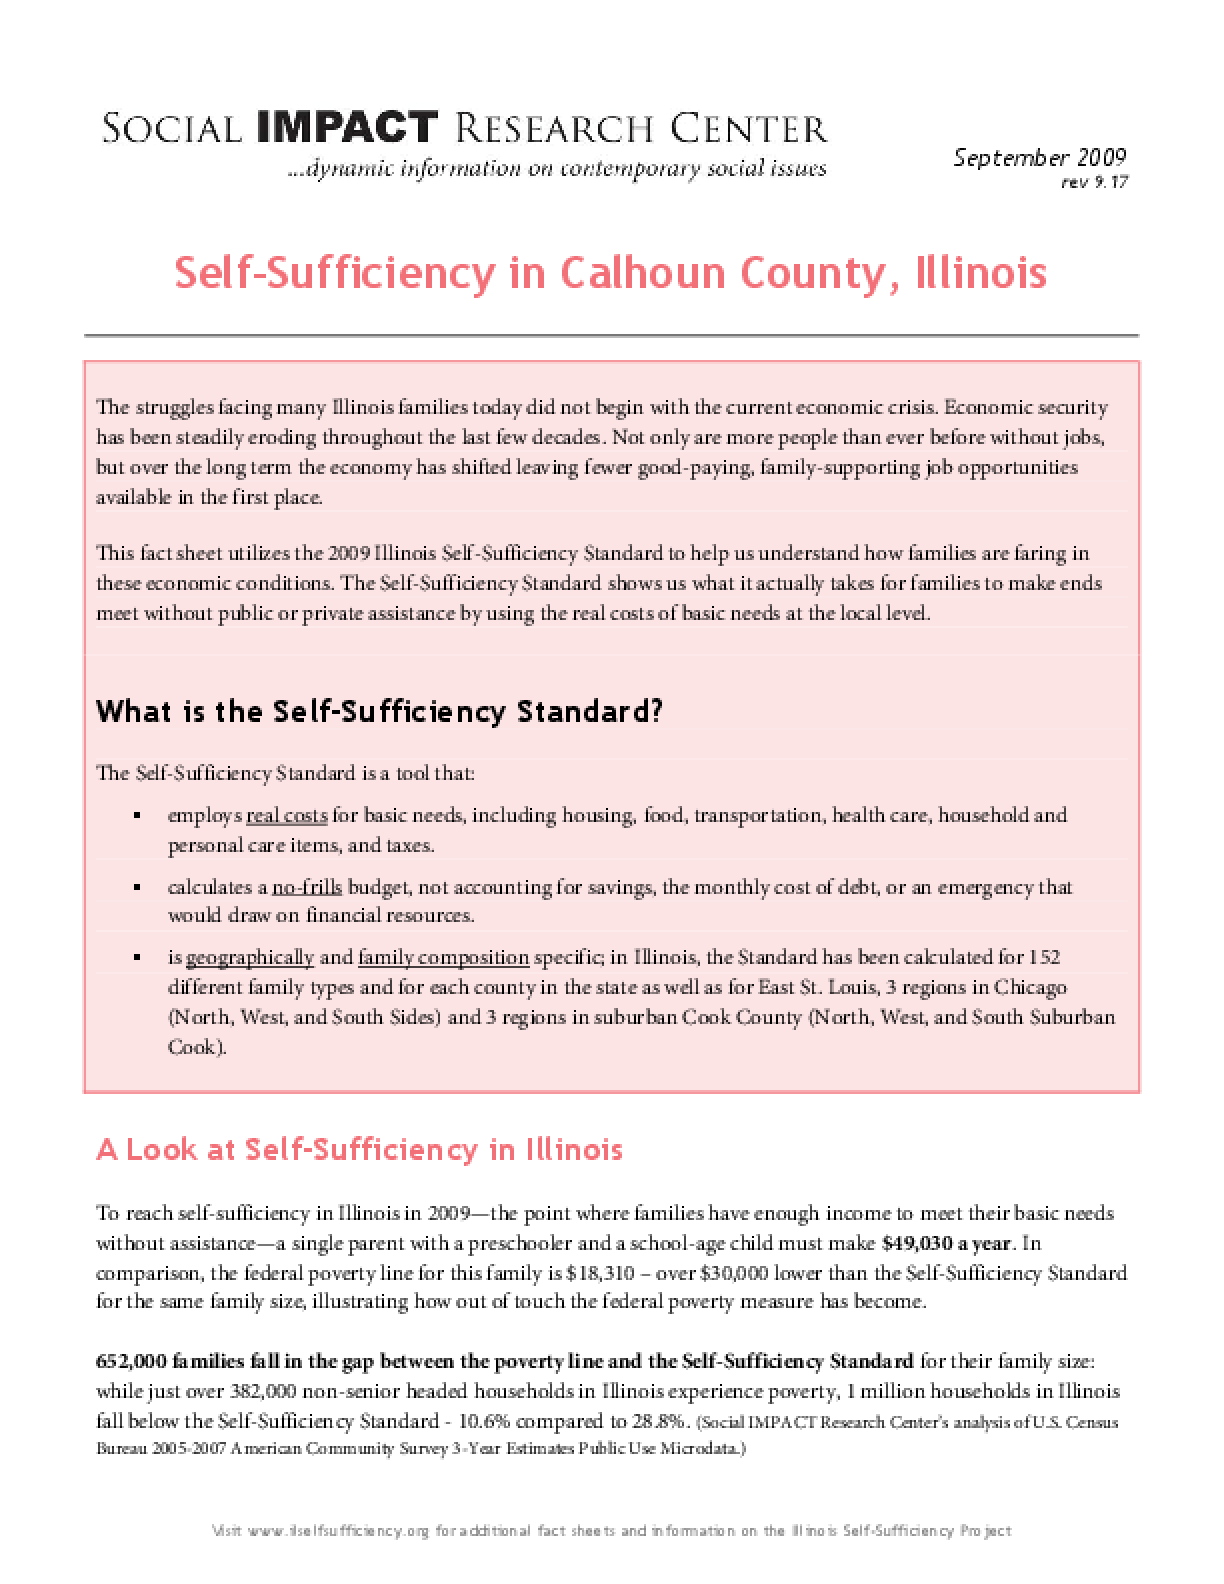 Self-Sufficiency in Calhoun County, Illinois